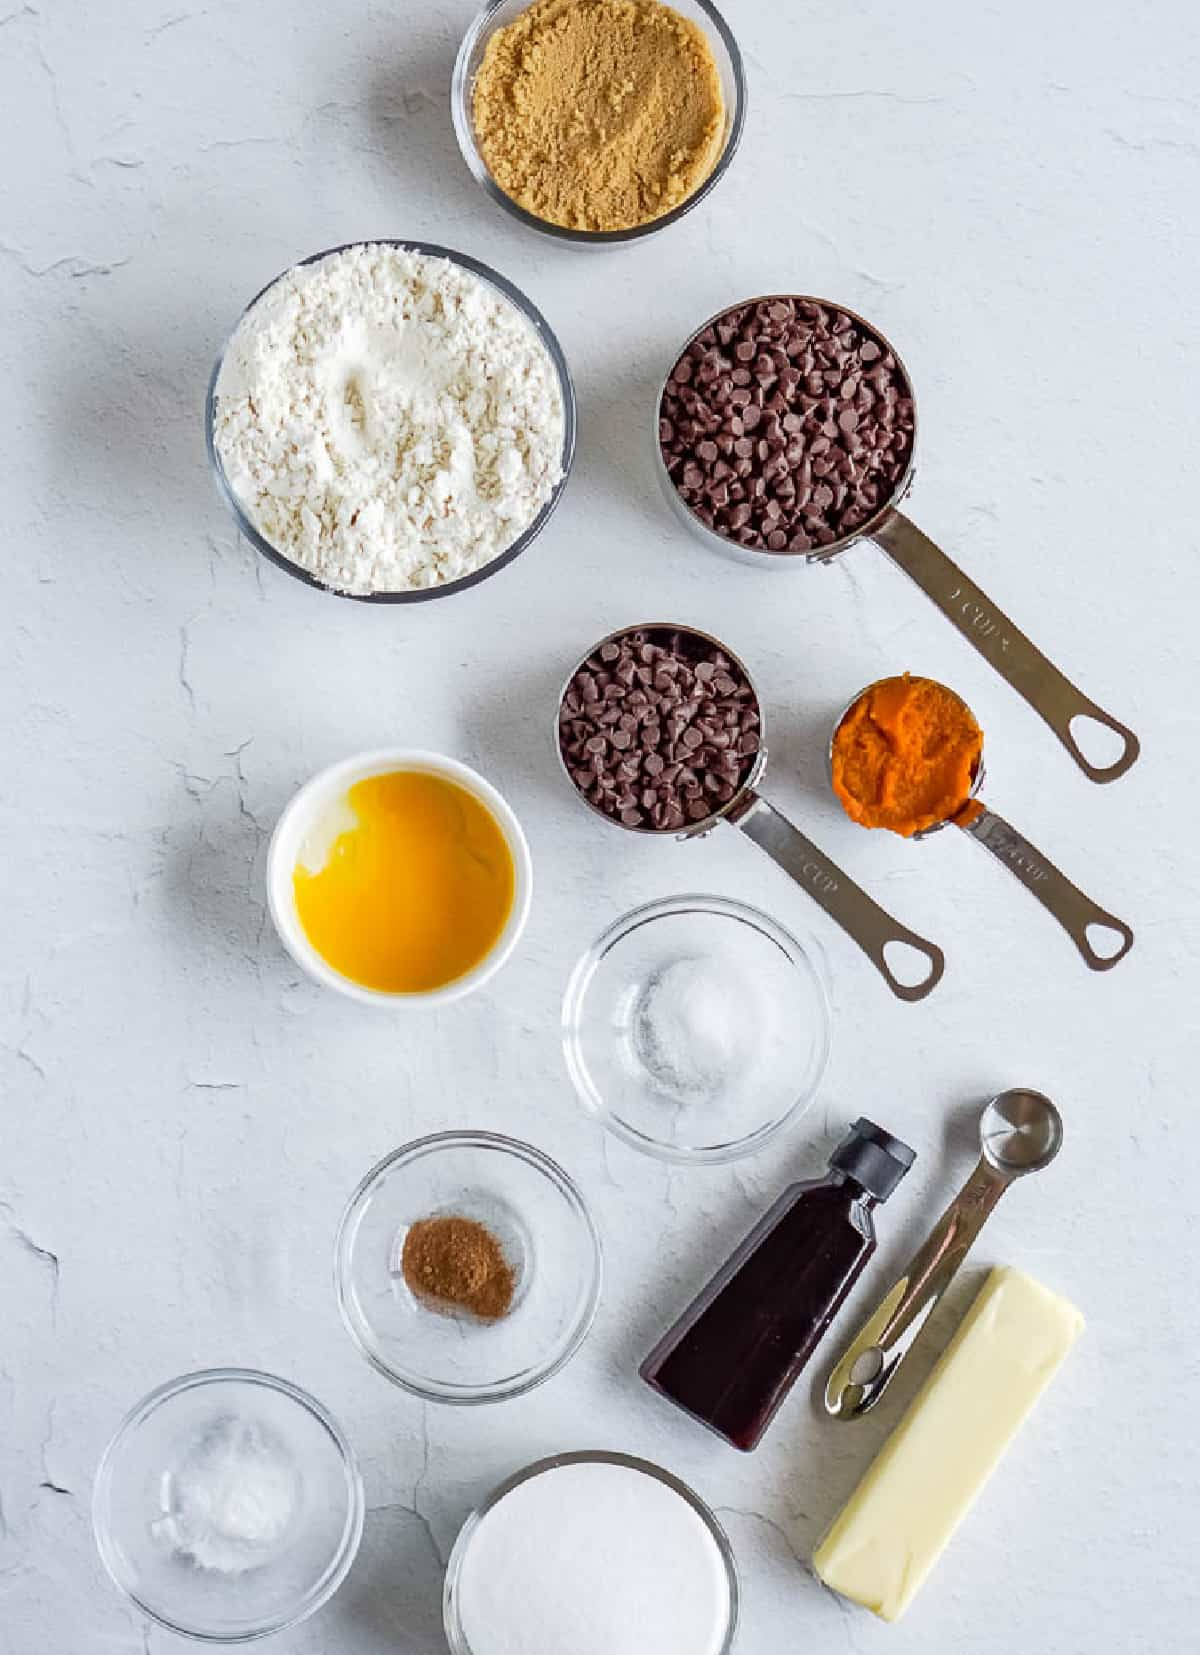 All the ingredients needed for this recipe.